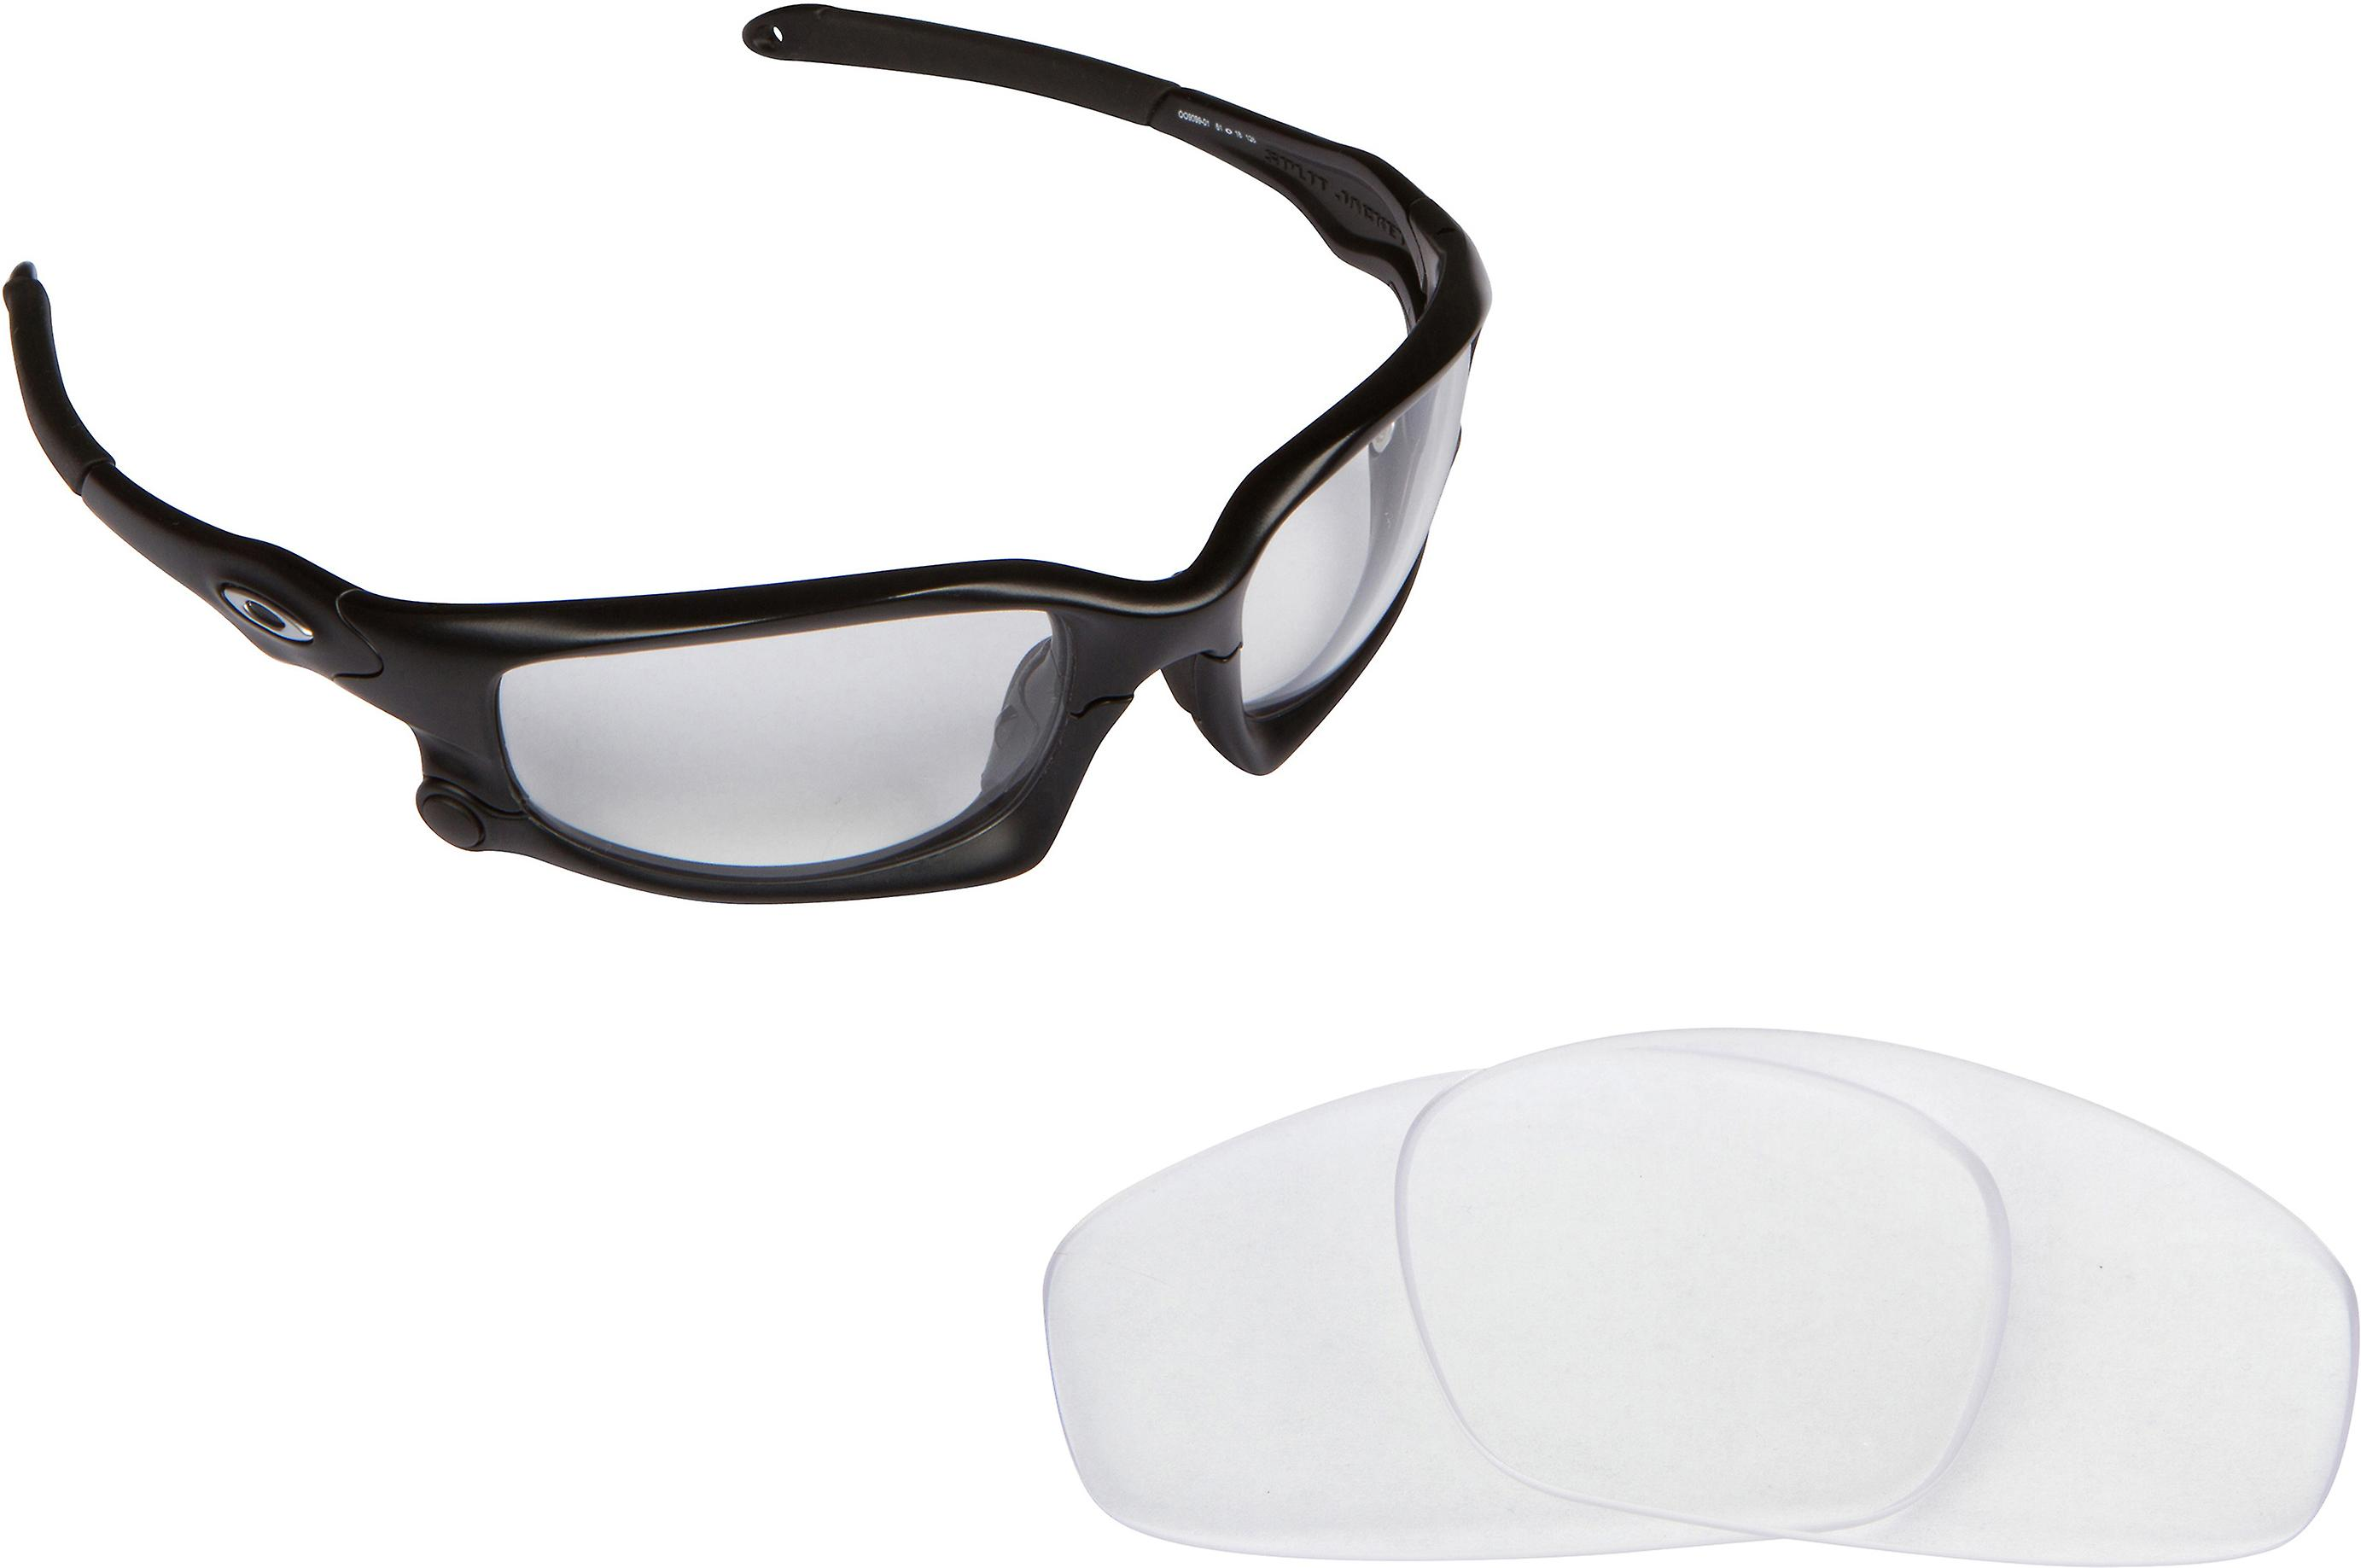 adda84c1ac2 Split Jacket Replacement Lenses Crystal Clear by SEEK fits OAKLEY Sunglasses